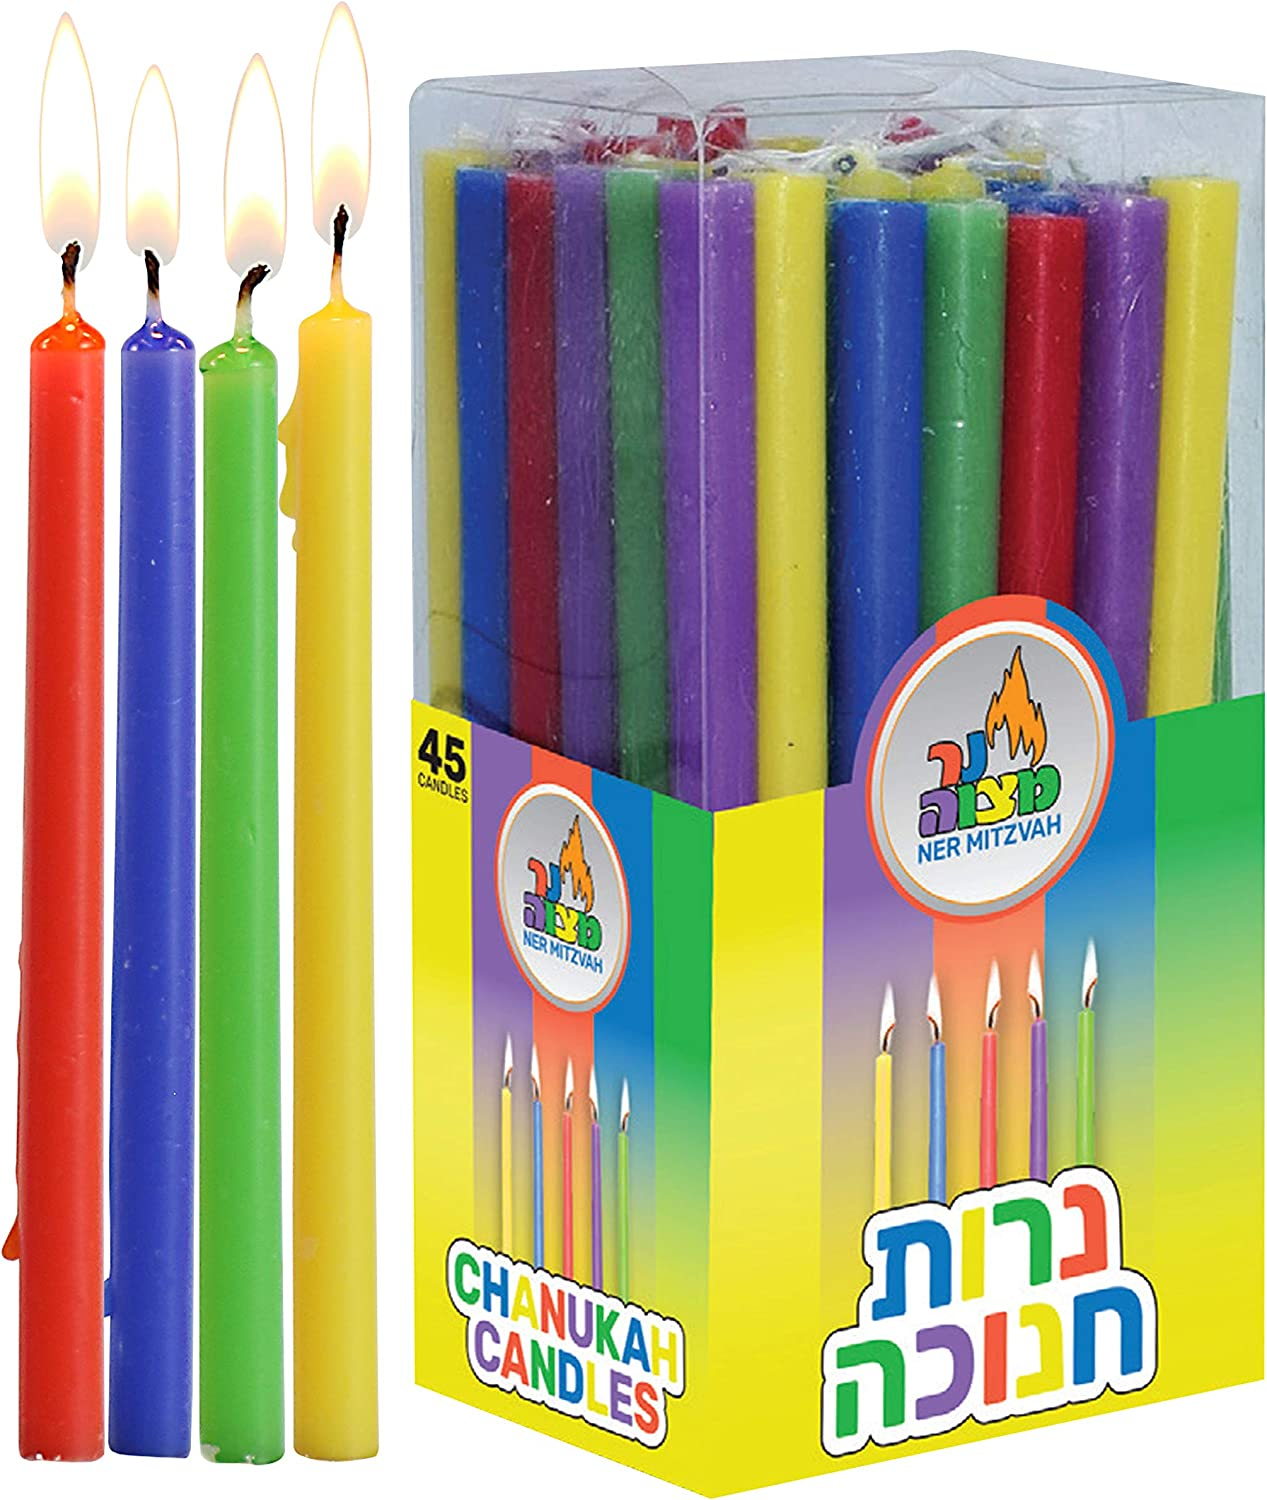 Safed Handcrafted Hanukkah Candles 45-Pack Orange//Purple//Yellow//Teal 6-Inch